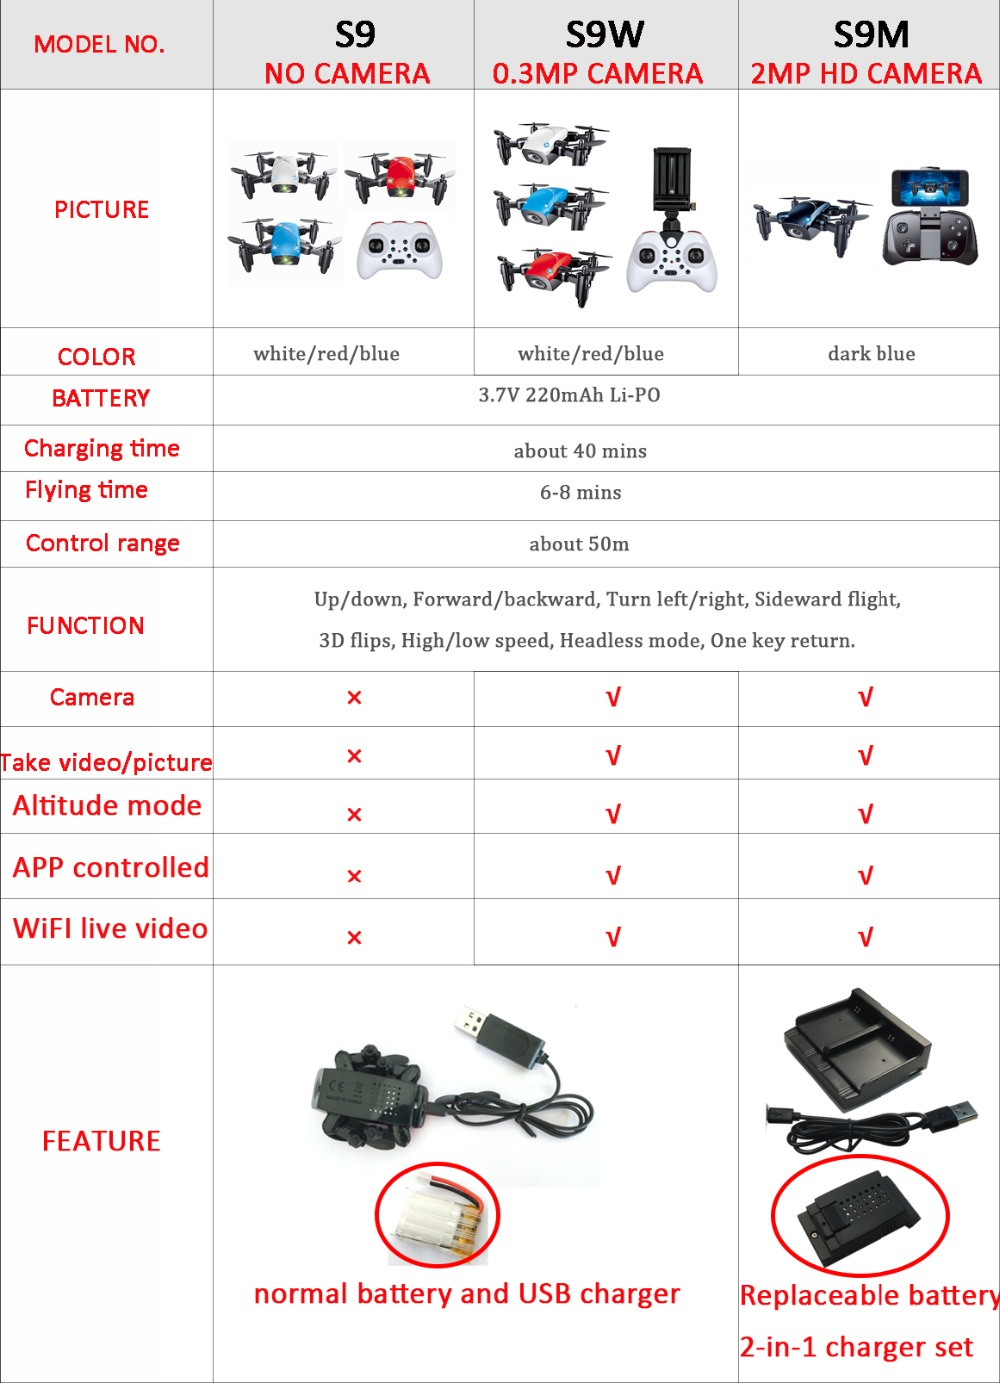 S9HW Mini Drone With Camera S9 No Camera Foldable RC Helicopter Altitude Hold RC Quadcopter WiFi FPV Micro Pocket Dron Boy Toys 1